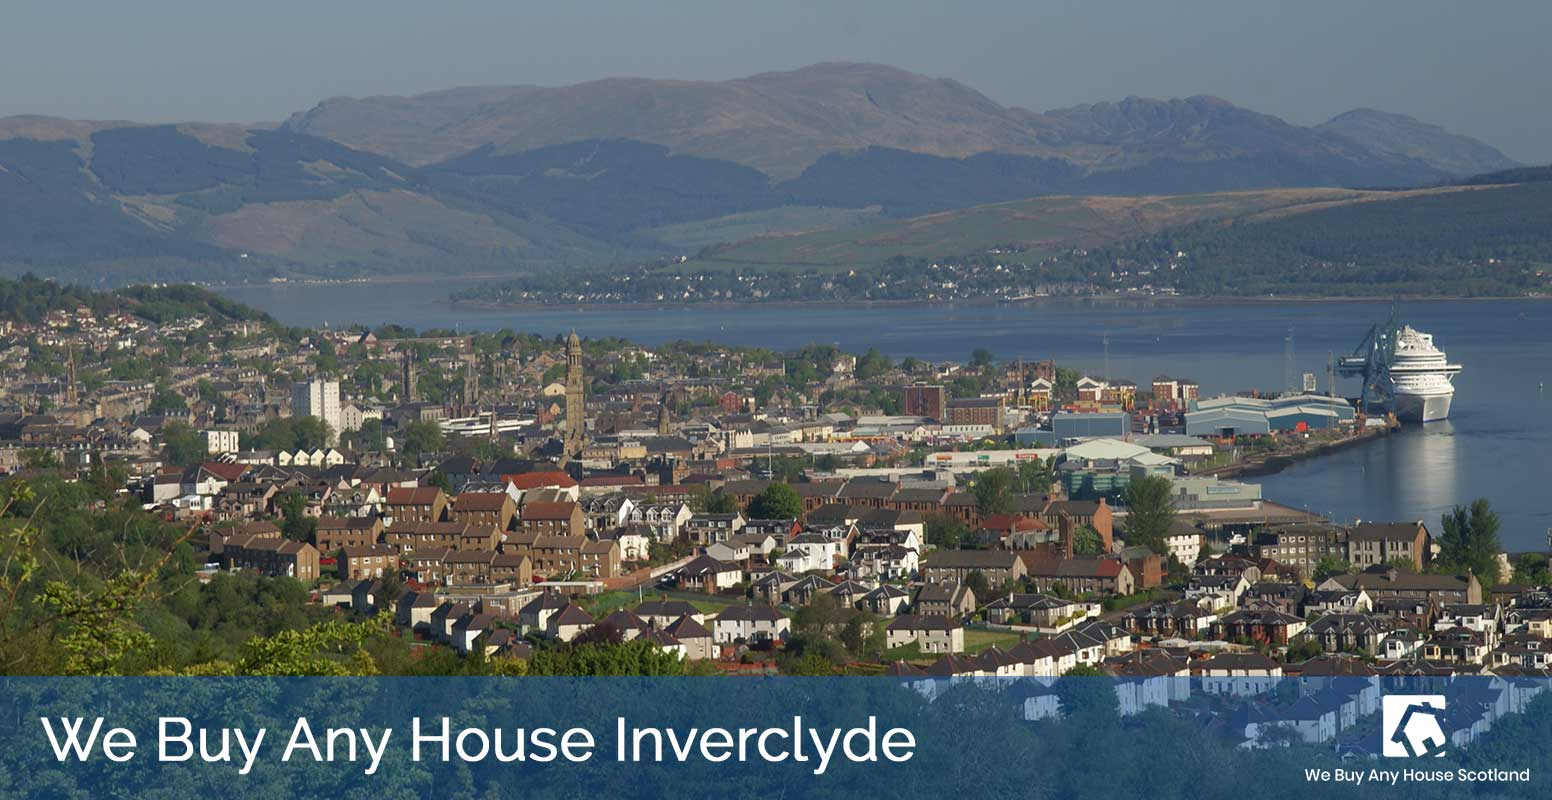 We Buy Any House Inverclyde